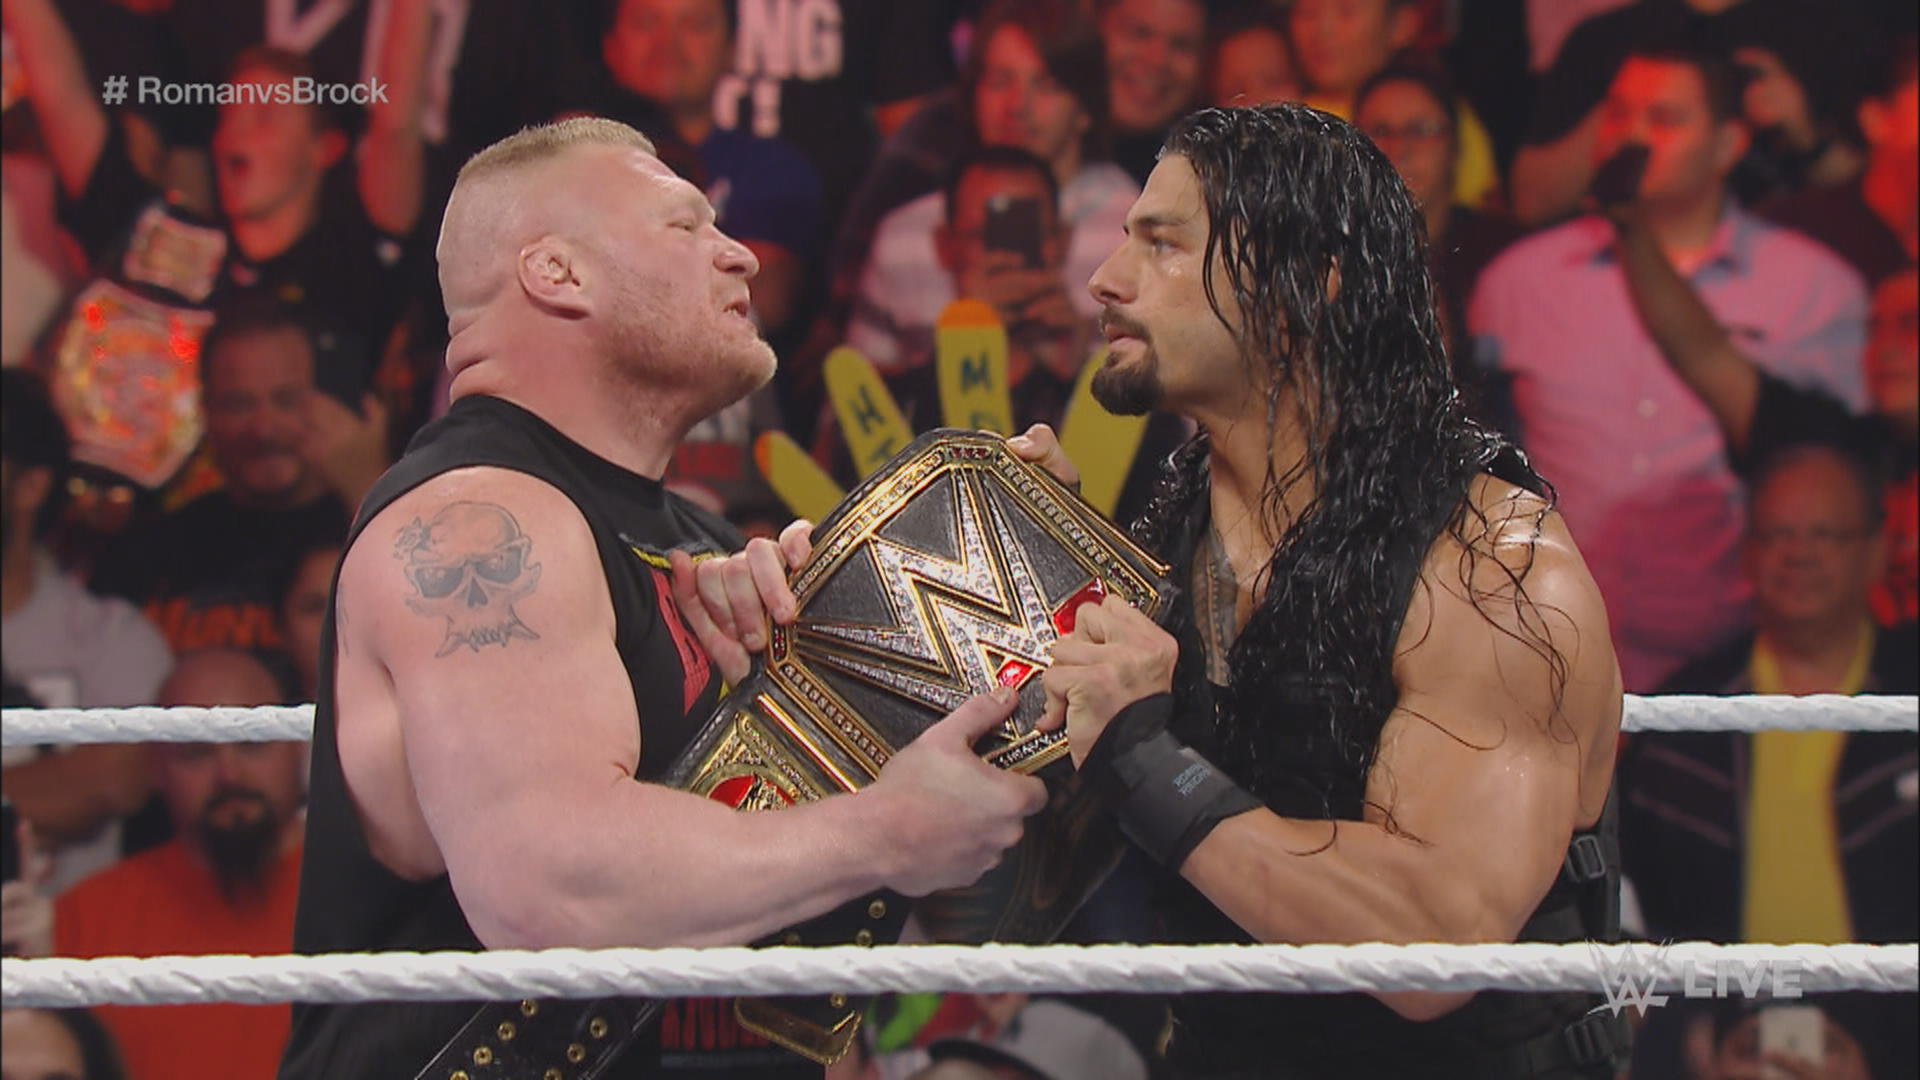 WWE Brock Lesnar and Roman Reigns tug of war